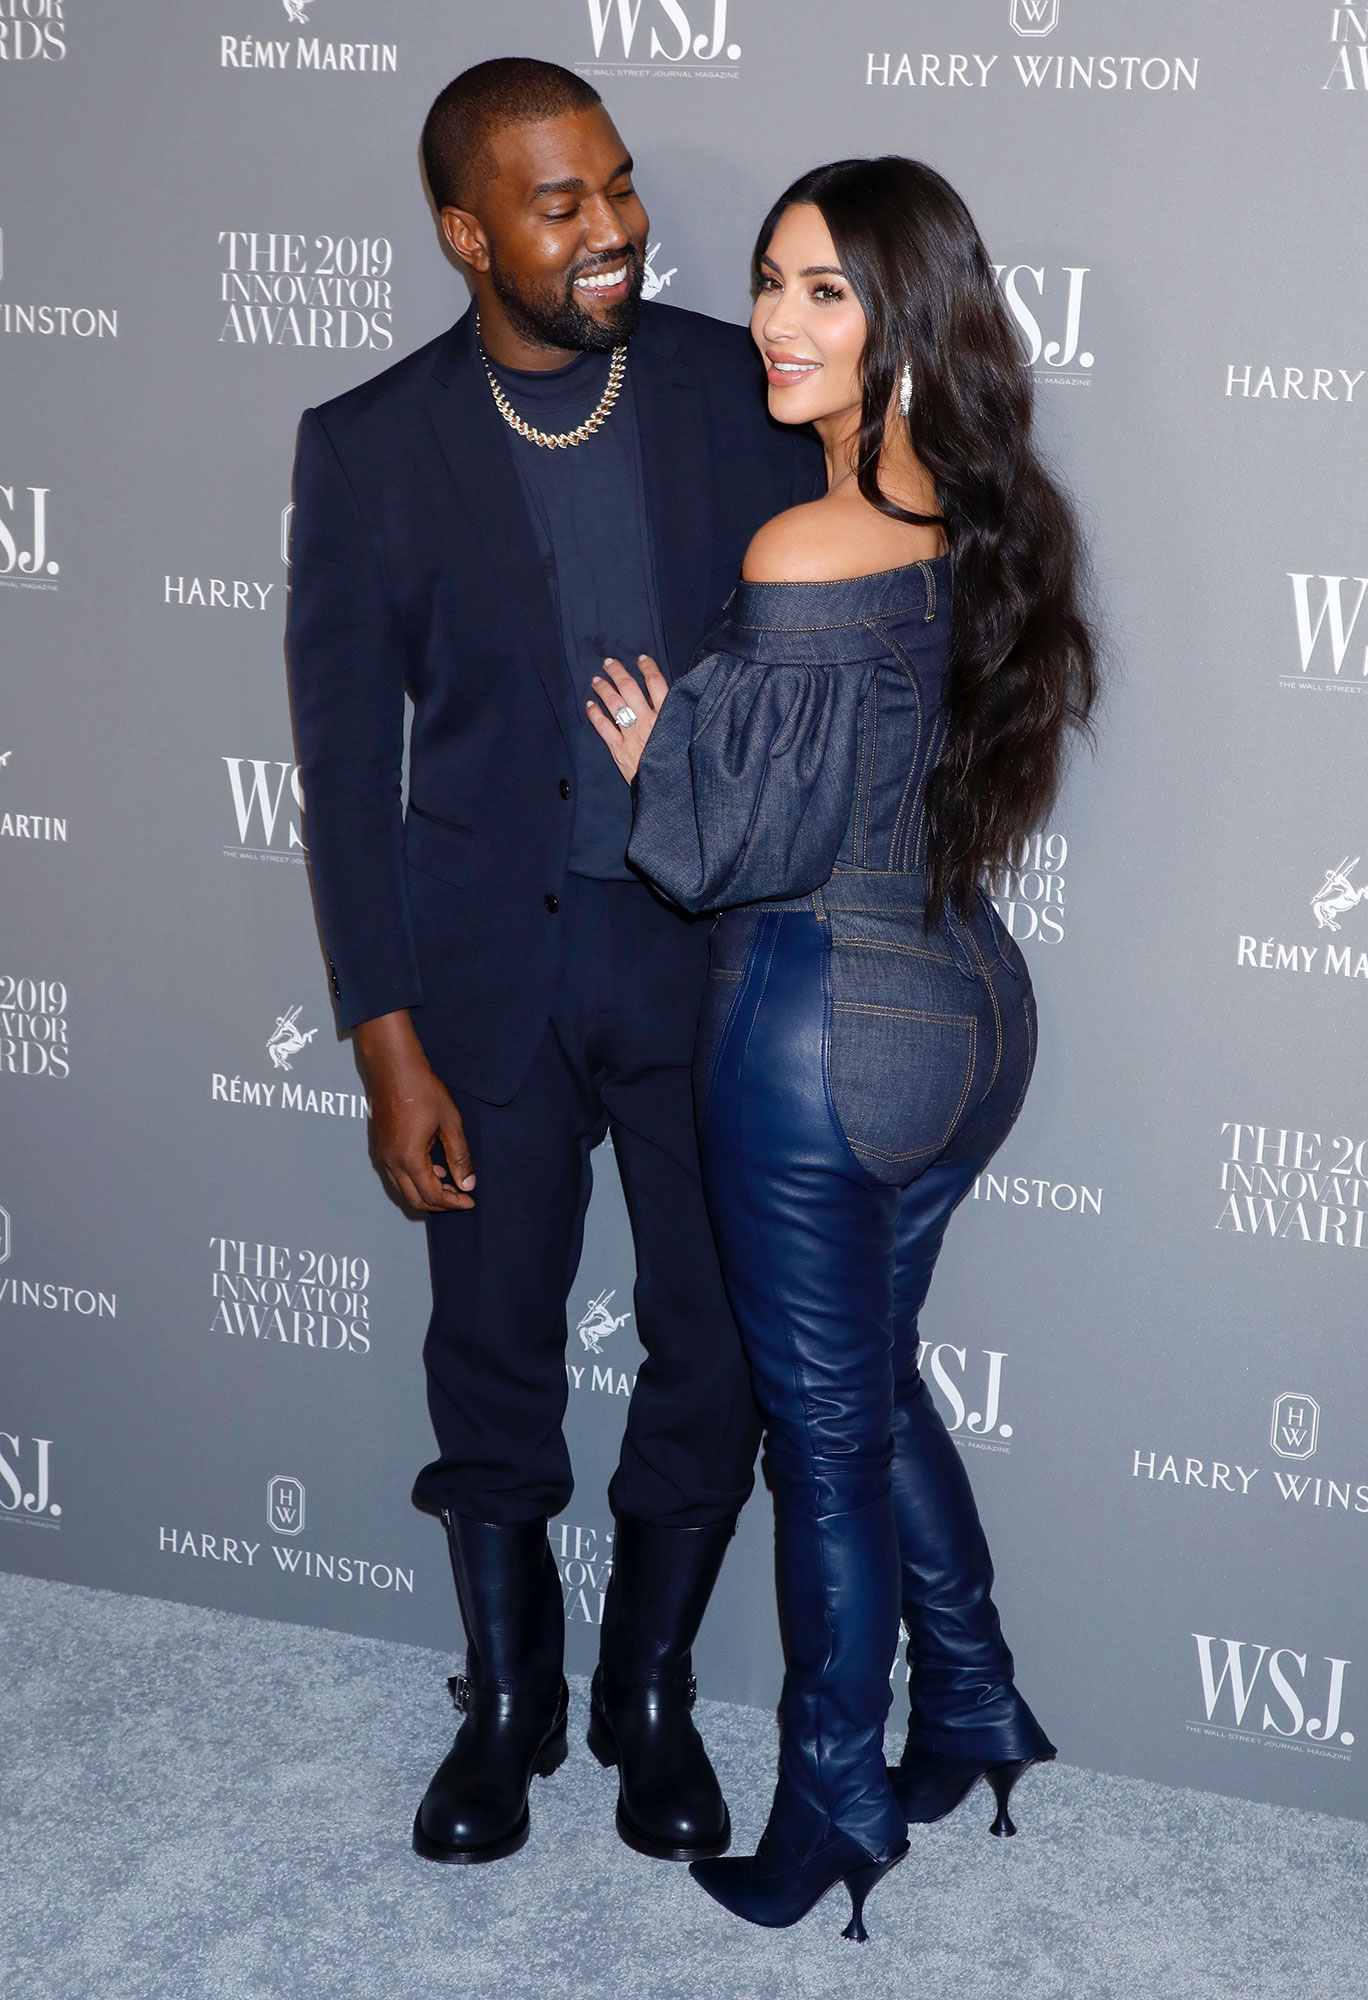 Kanye West Proud of Kim Kardashian Becoming a Billionaire